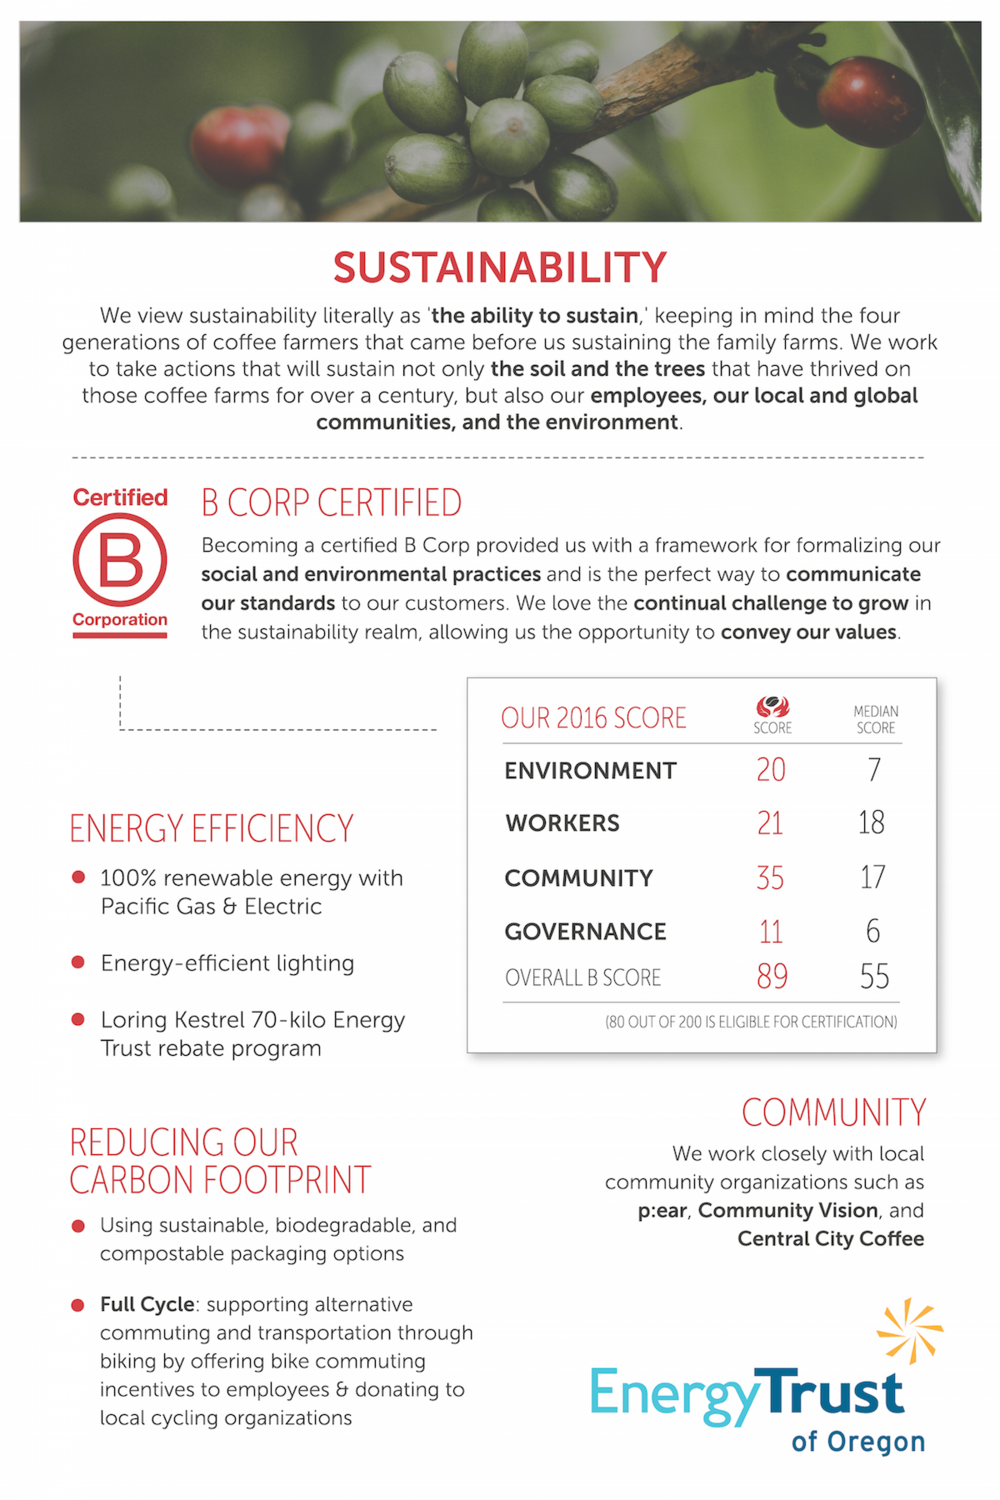 Sustainability and B Corp Certification at Nossa Familia Coffee